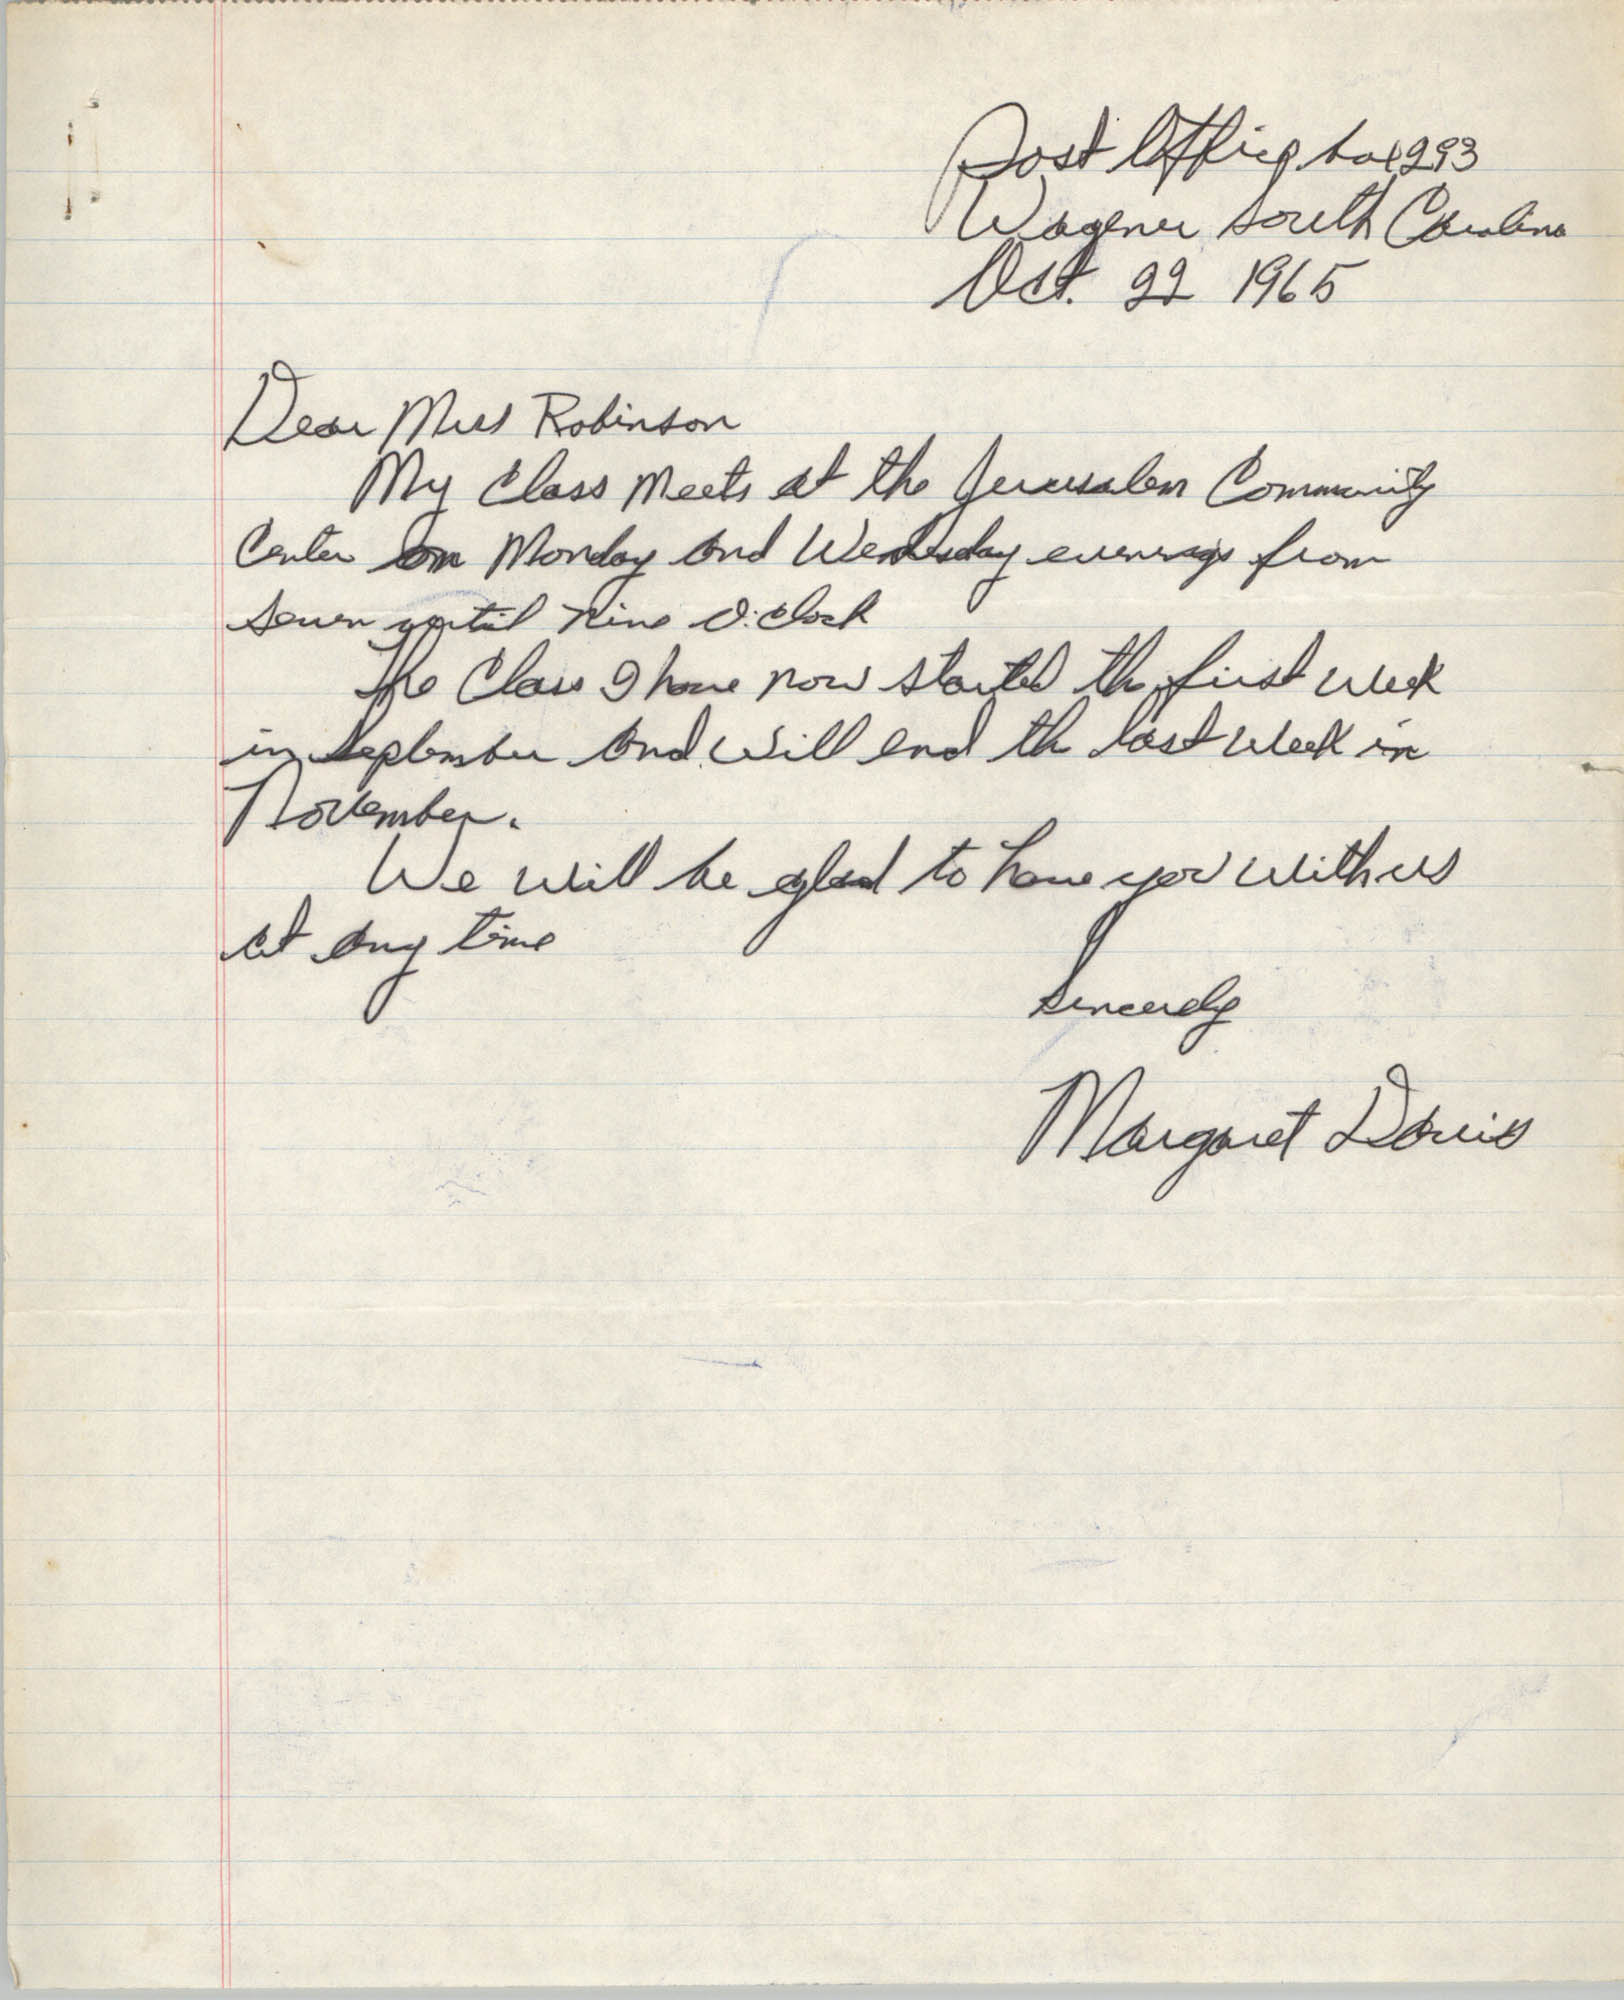 Letter from Margaret Davis to Bernice Robinson, October 22, 1965